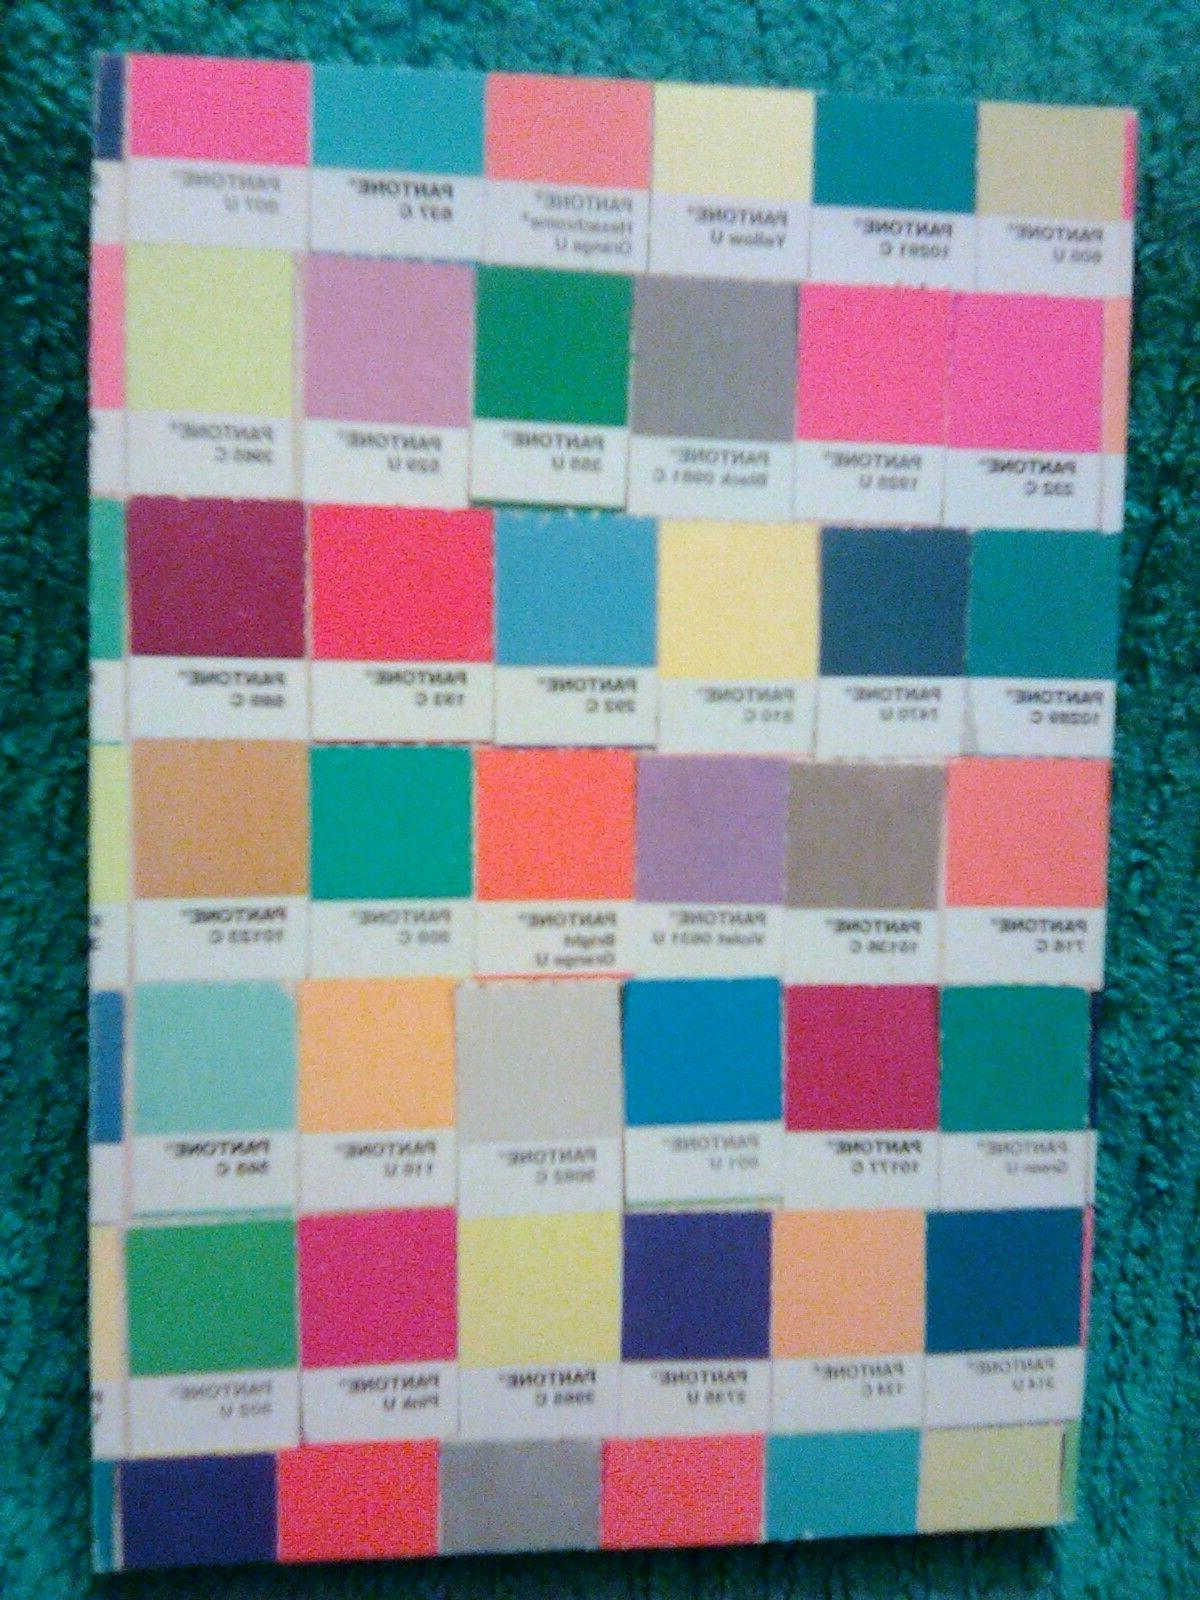 chronicle books multicolor journal no 1 by